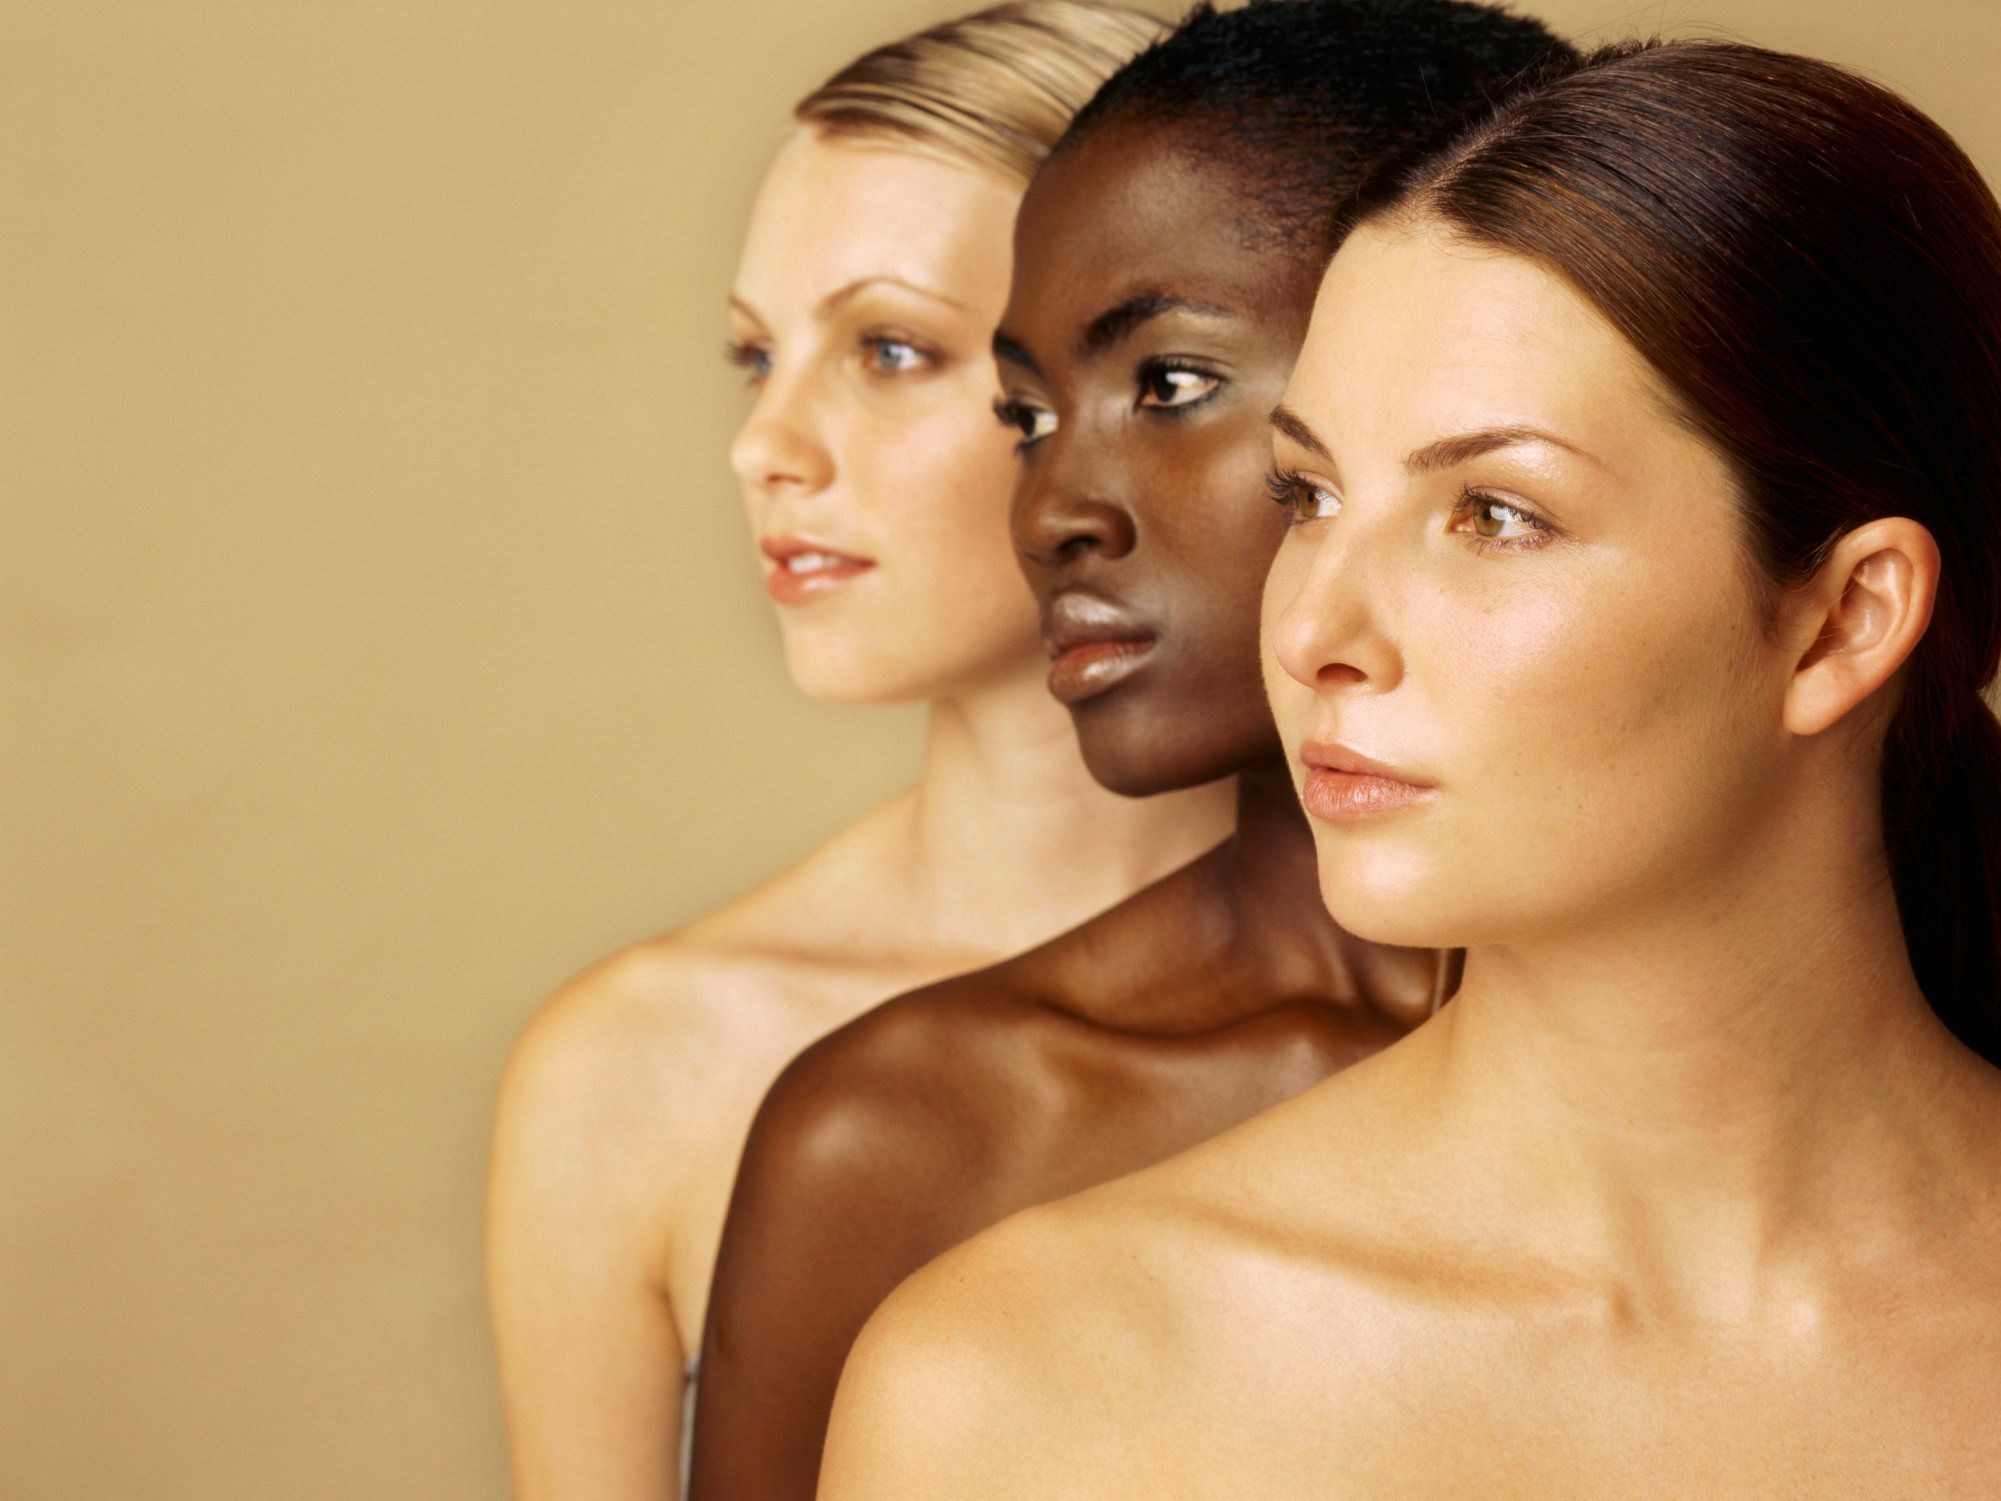 Race is a social construct, researchers say.